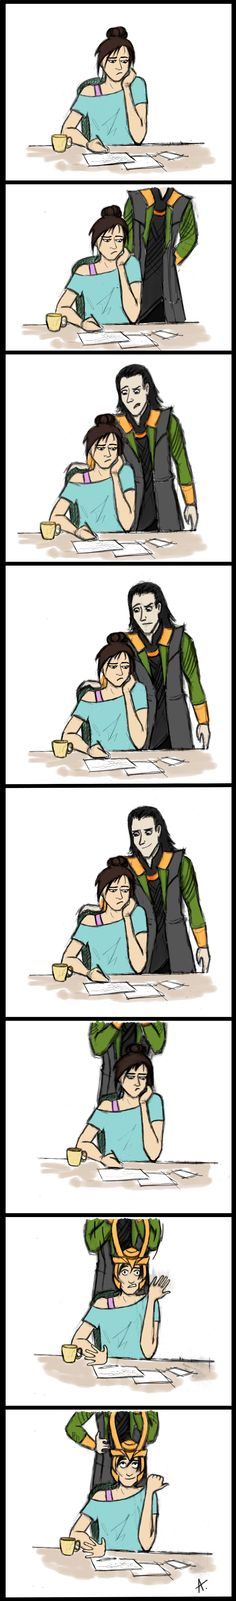 I don't know I'd this would help me with my homework or distract me from it!<< Are you serious??? How could anyone think about homework when LOKI is standing right behind you, and has just placed his helm on your head???